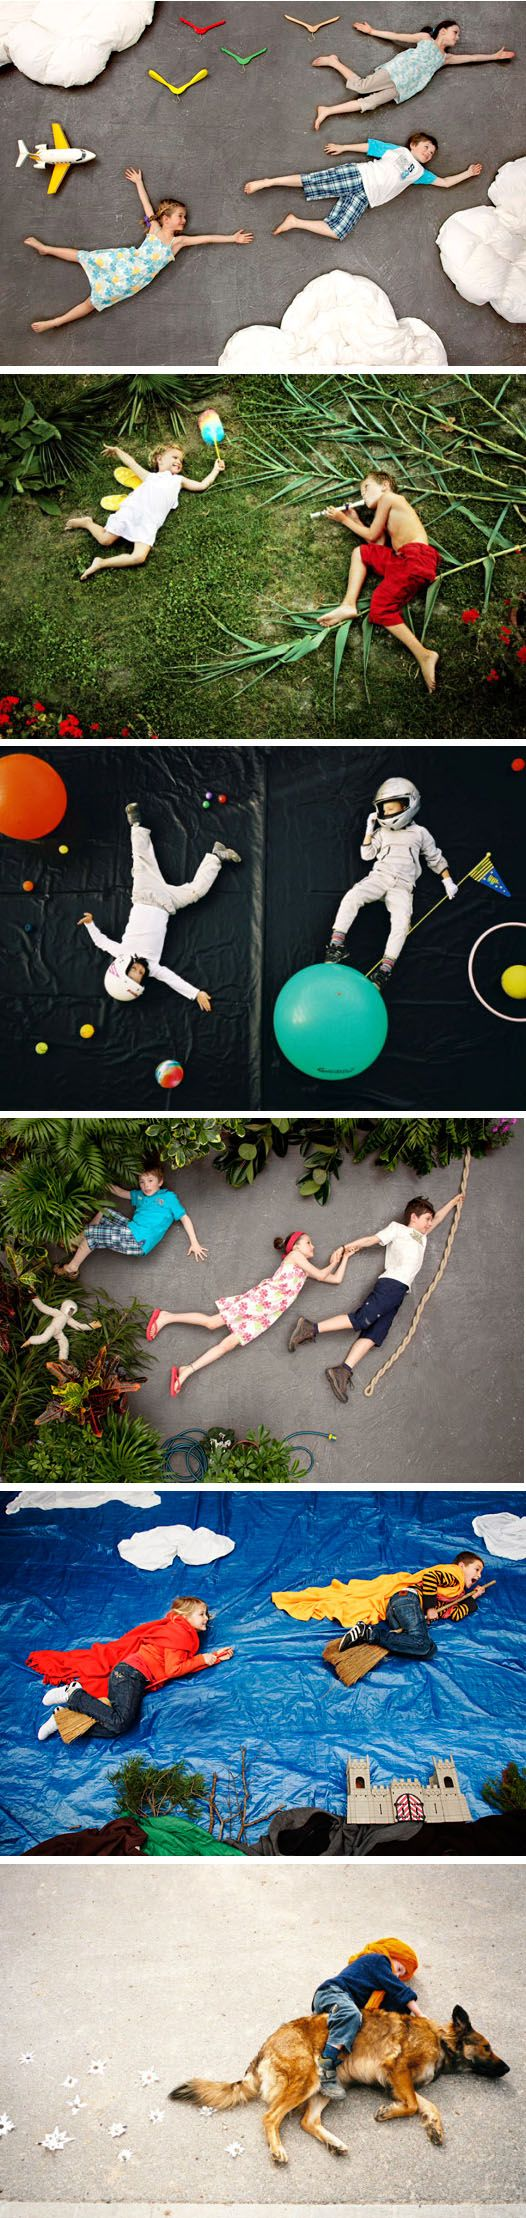 Dreams of flying - a series by Jan Von Holleben #kids #family #photoshoot #photography #ideas